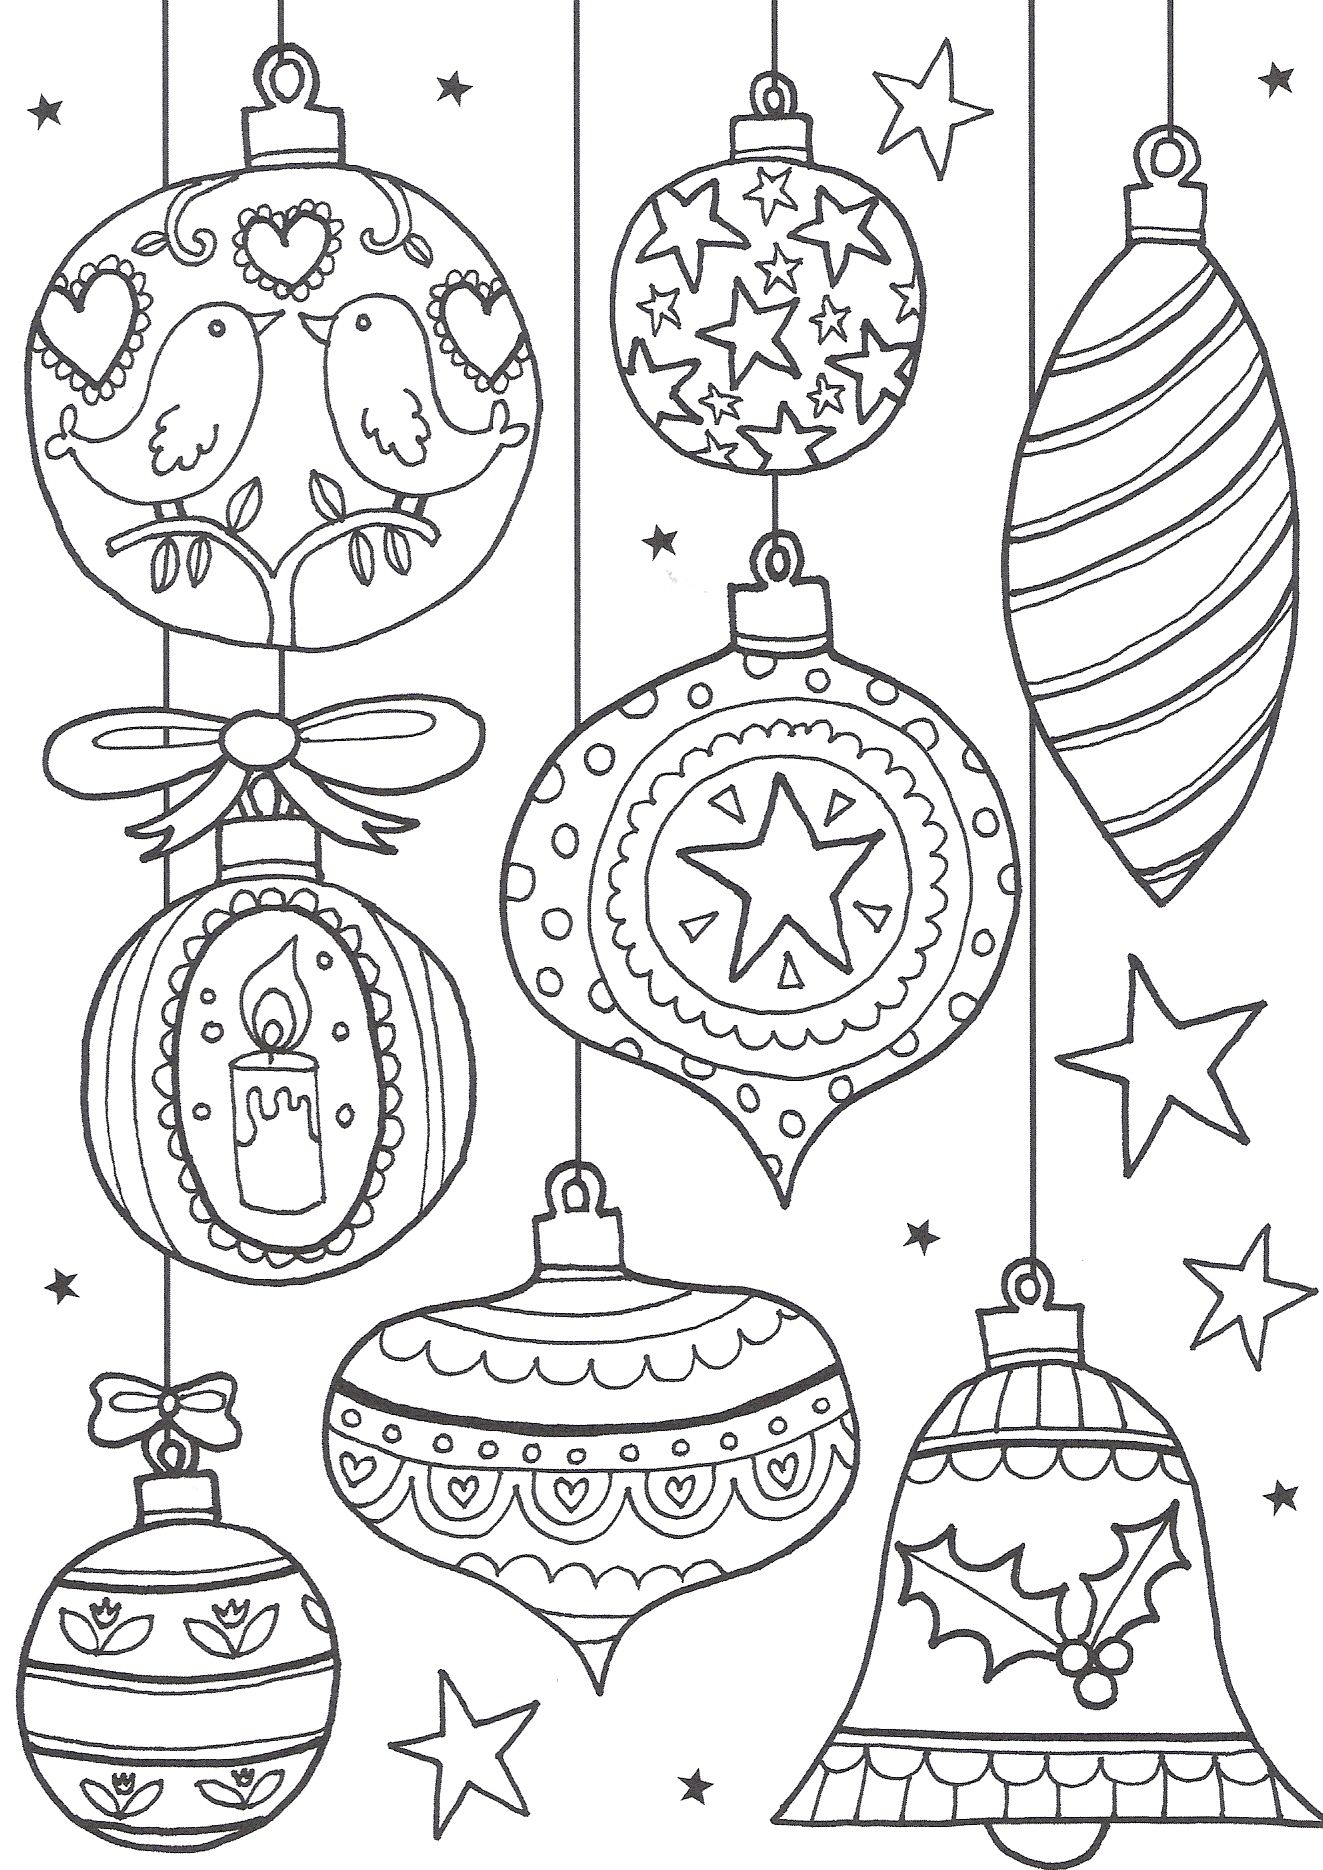 Christmas Coloring Pages No Download With Free Colouring For Adults The Ultimate Roundup